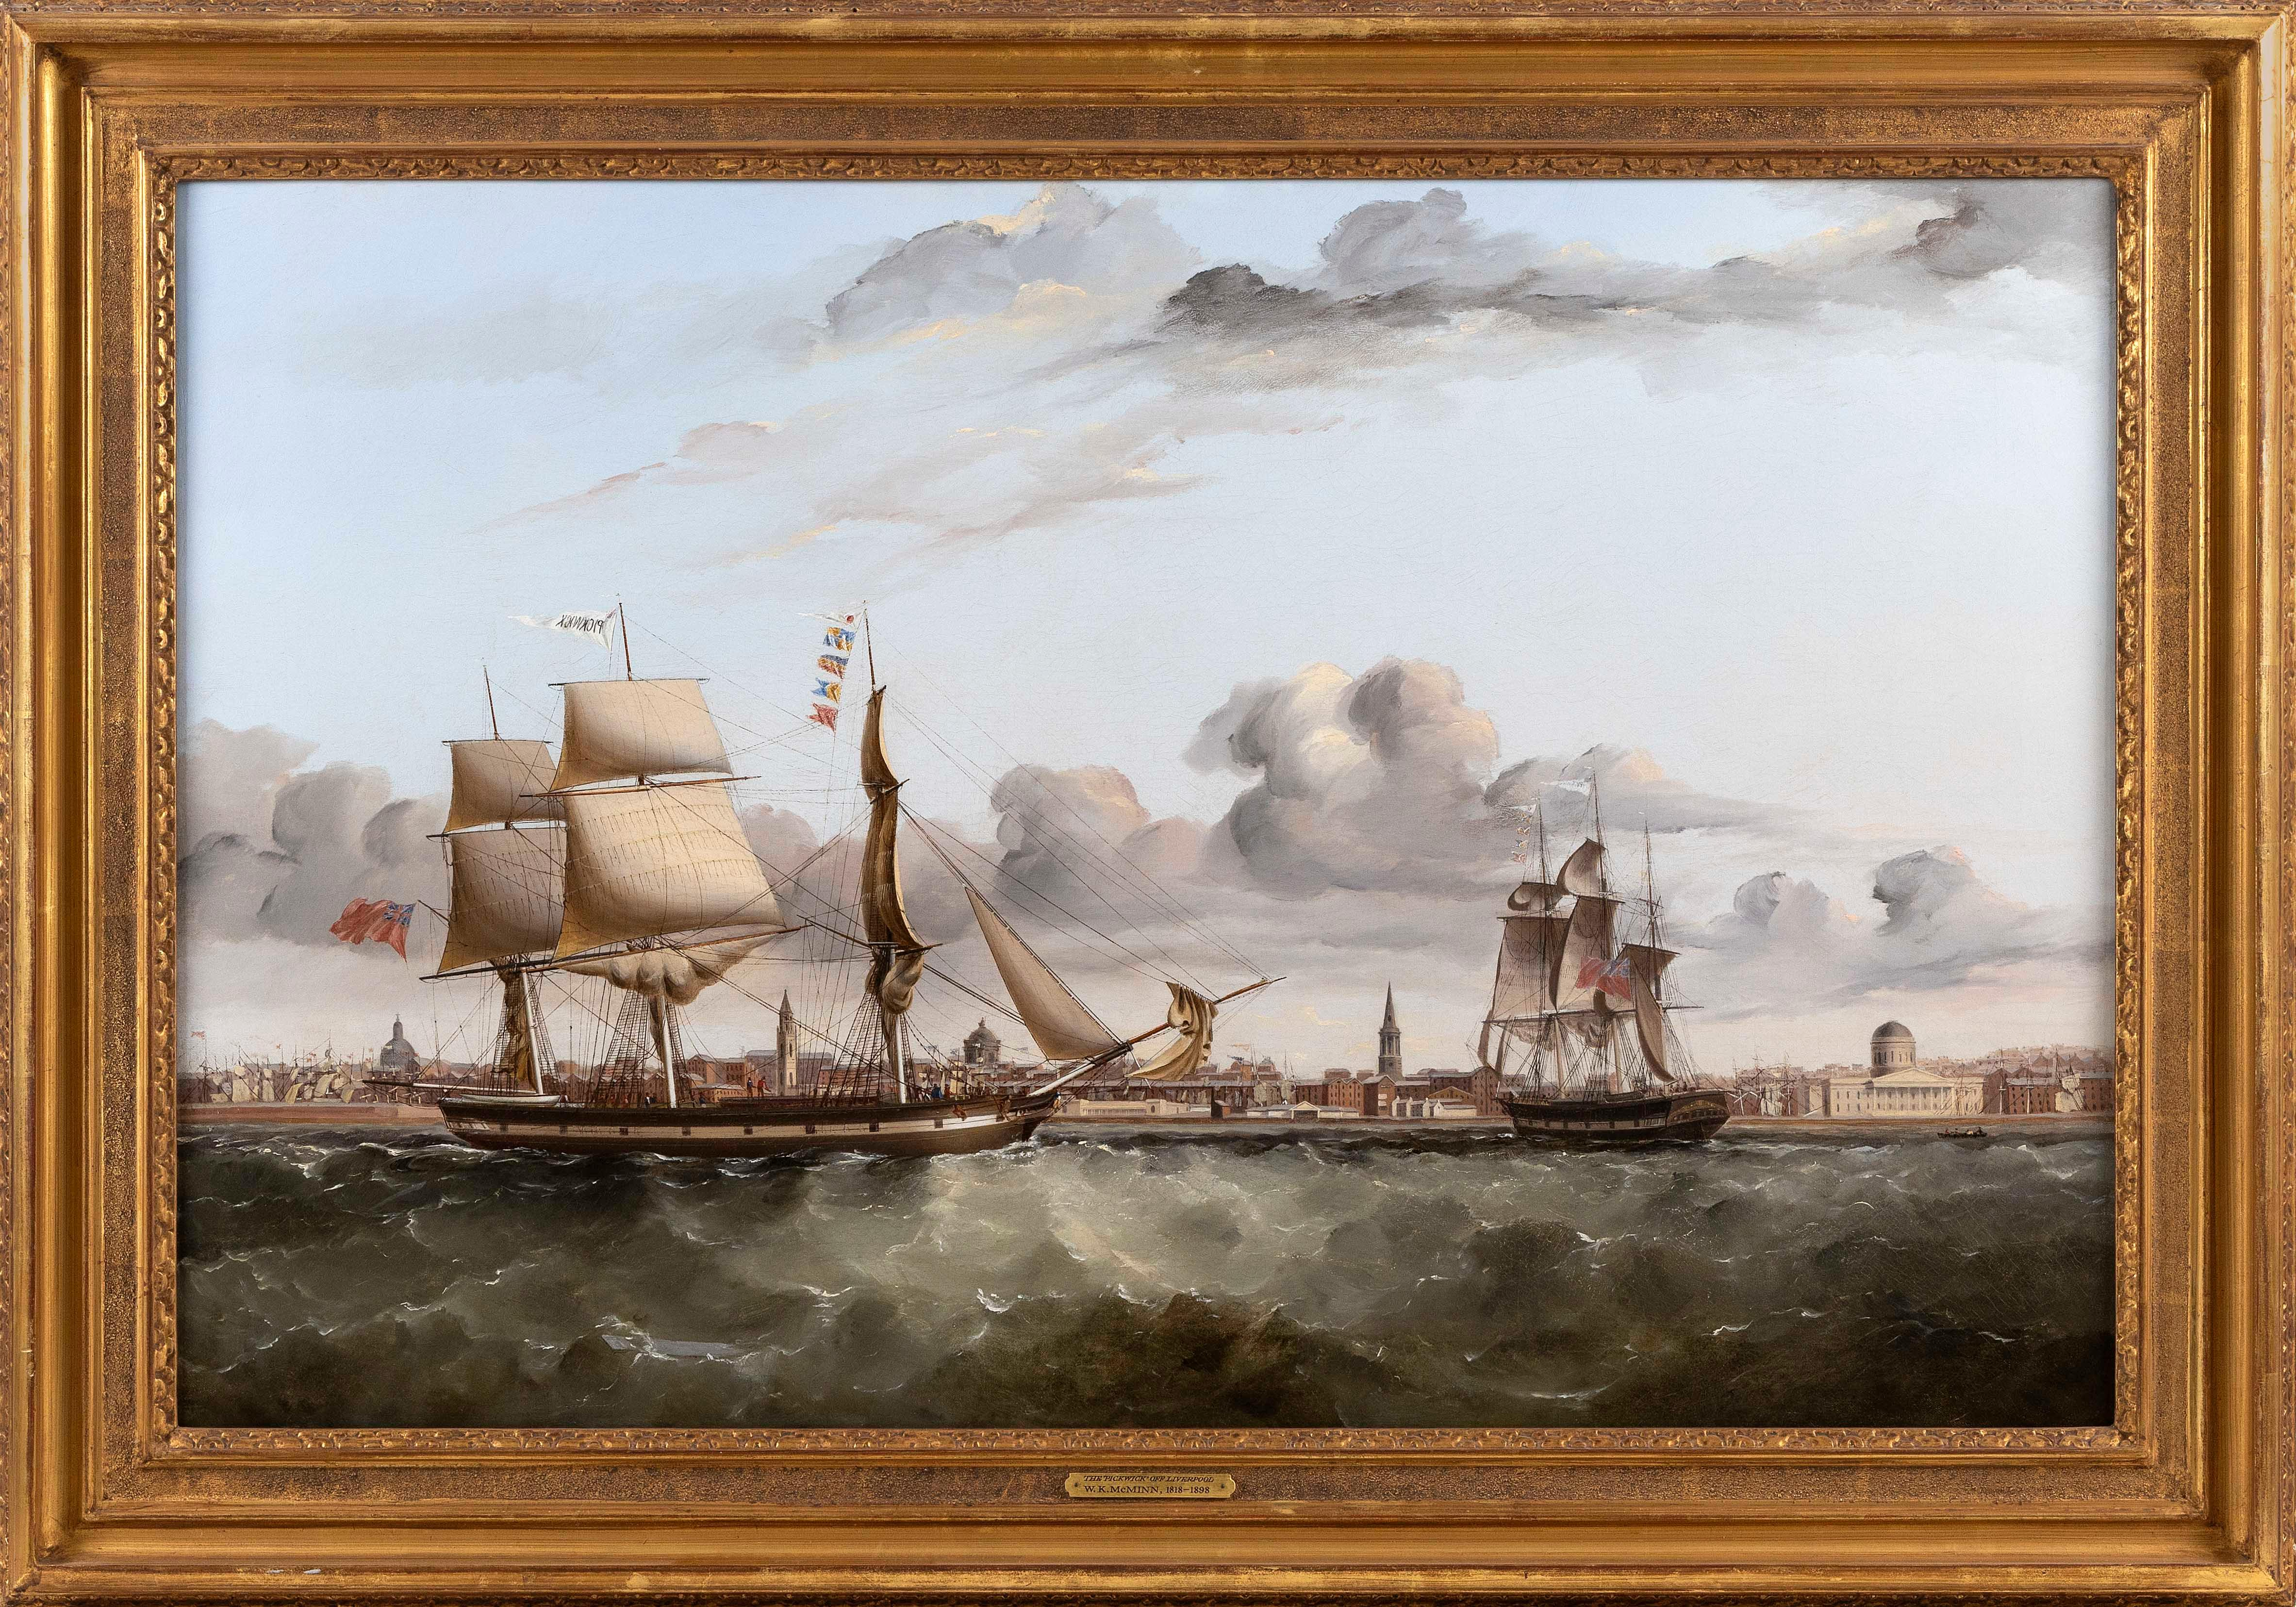 """WILLIAM KIMMINS MCMINN (California/United Kingdom, 1820-1898), The Pickwick in two positions off Liverpool., Oil on canvas, 24"""" x 37"""". Framed 30.5"""" x 43.5""""."""